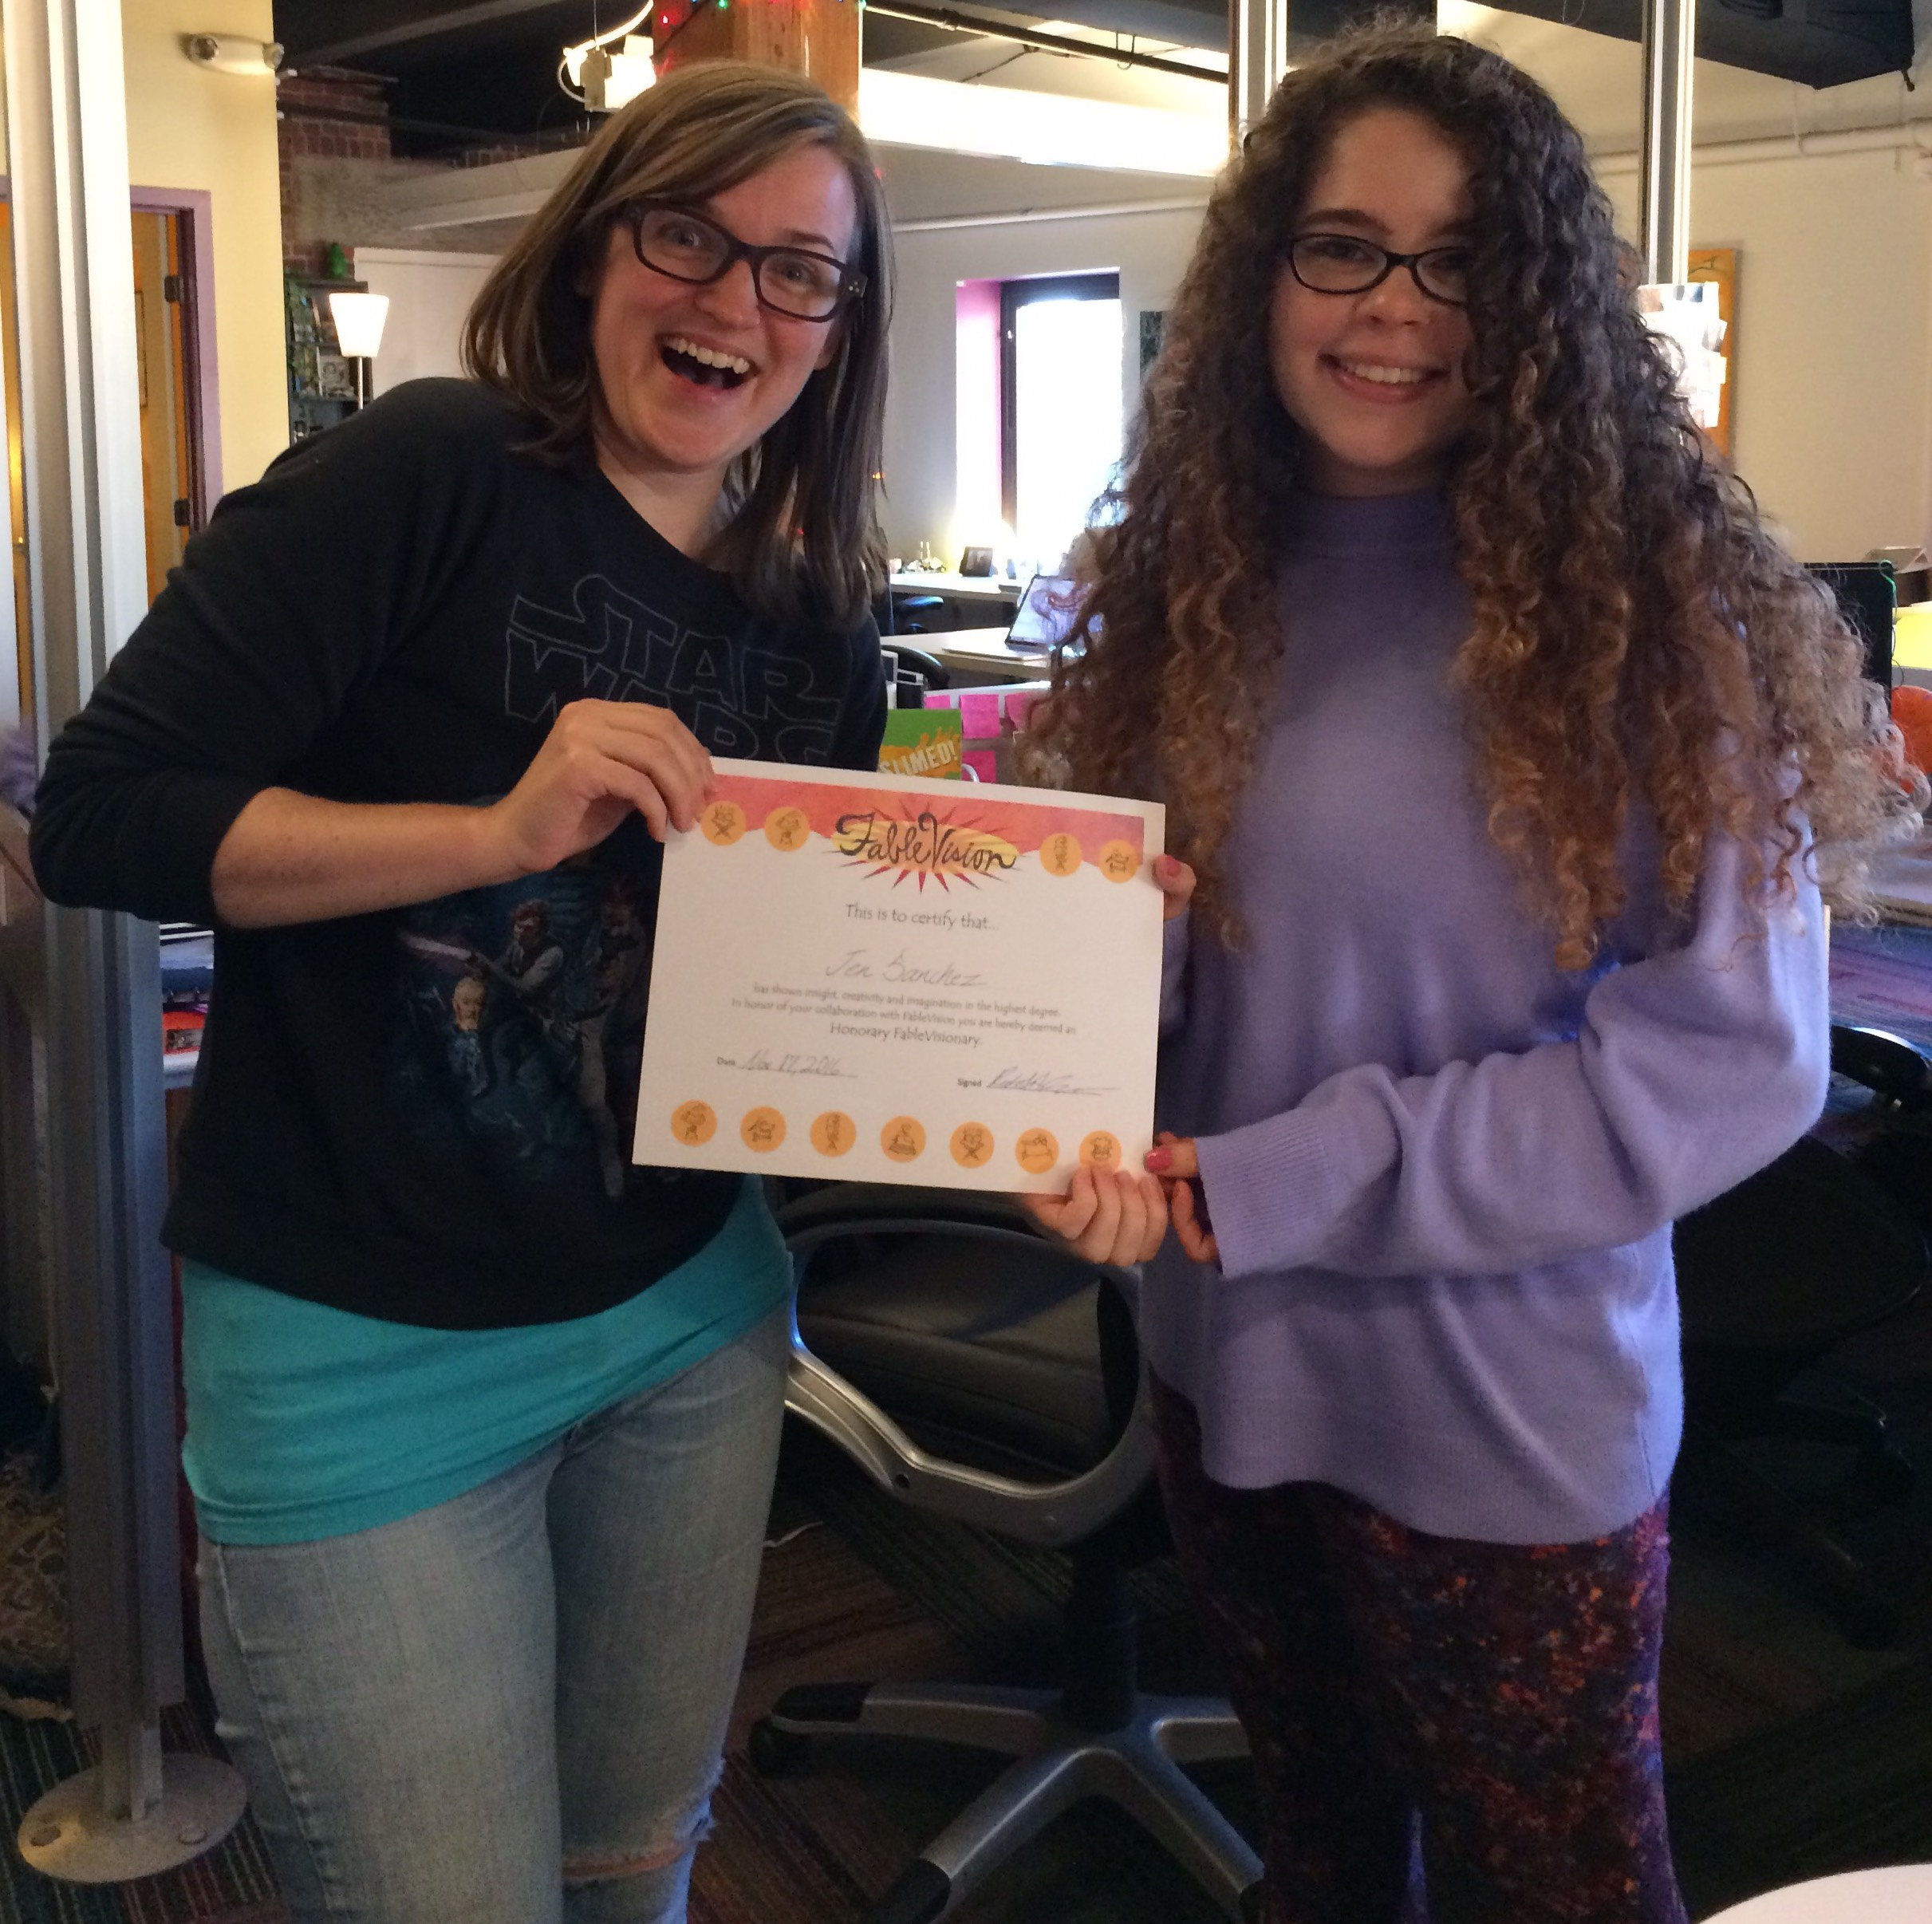 FableVision's Hannah O'Neal awarding Jen with an honorary FableVisionary award.